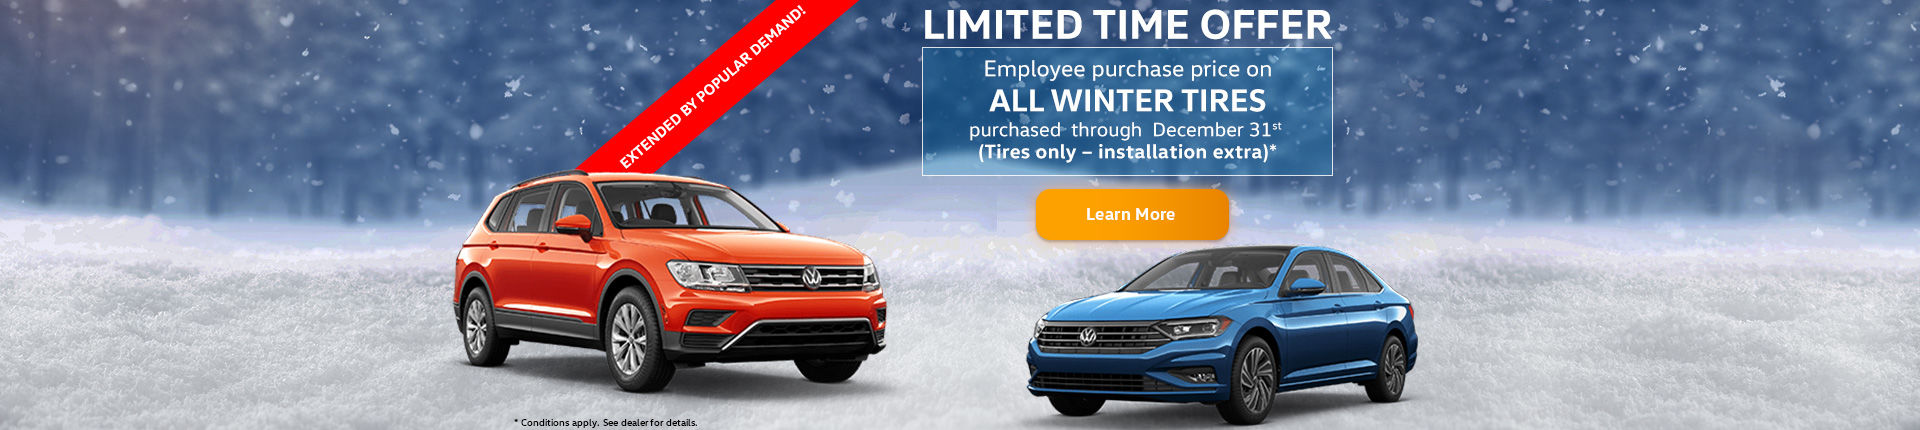 NOW EXTENDED! Get Employee Purchase Pricing on All Winter Tires!